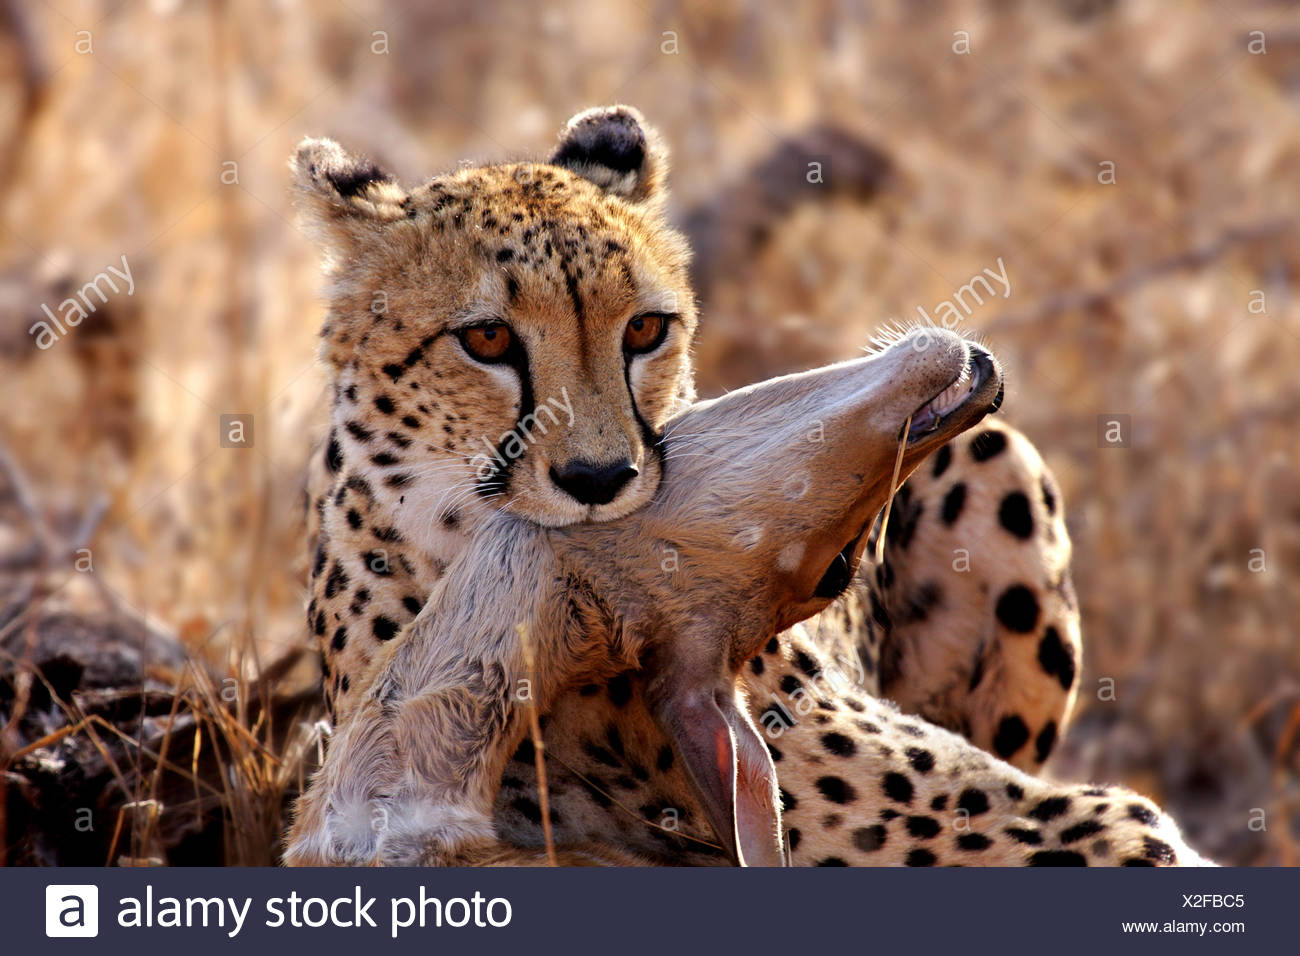 cheetah with prey,wildlife - Stock Image